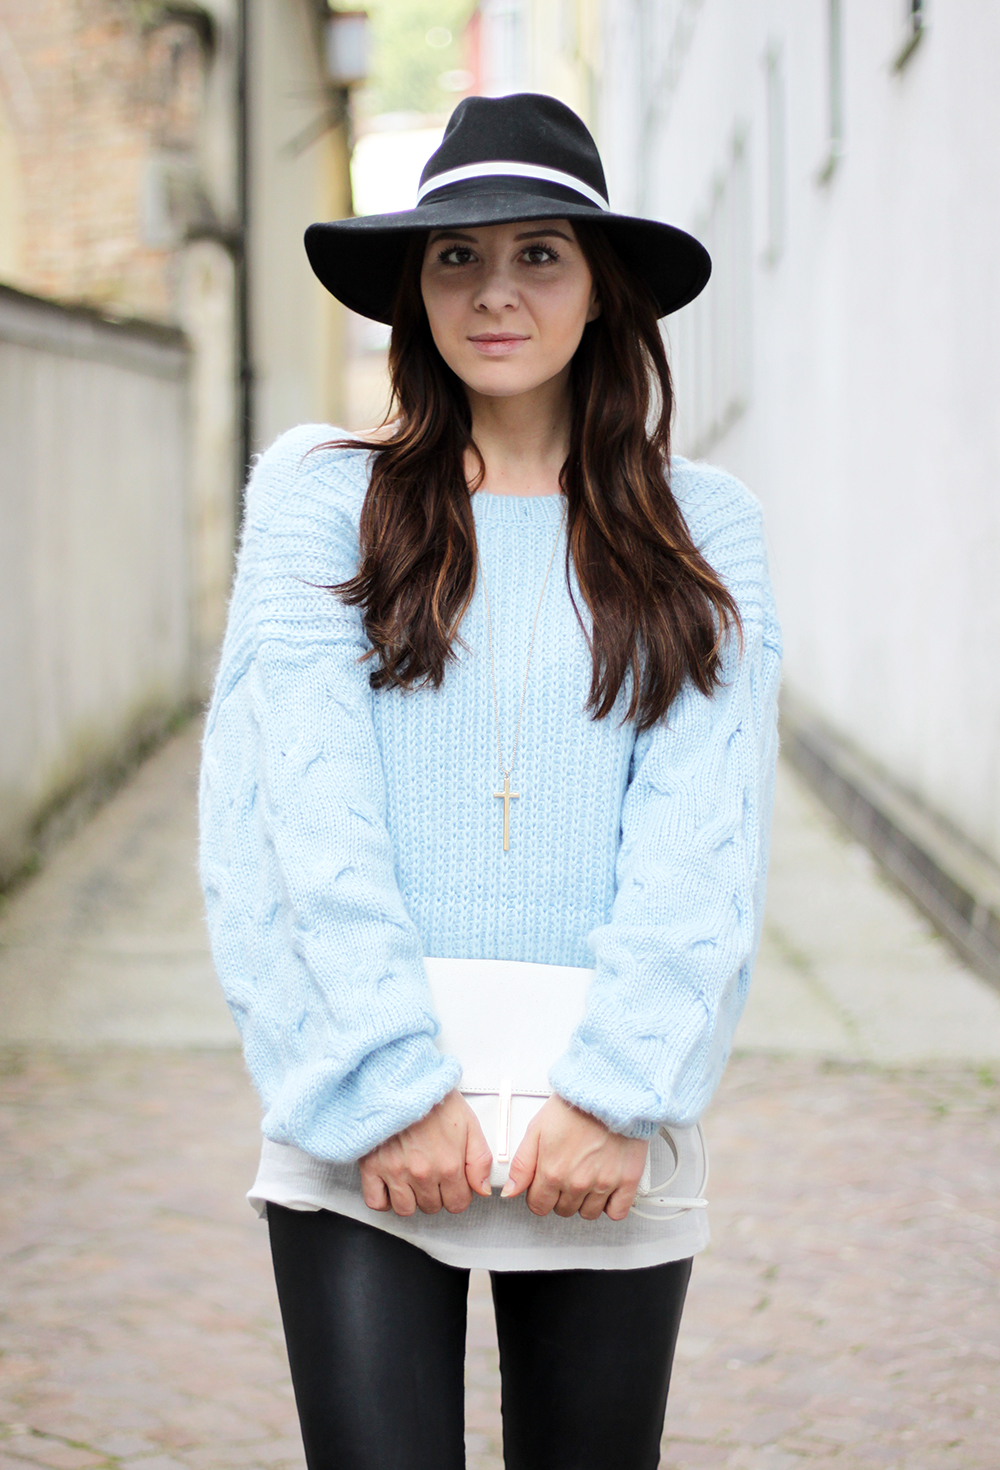 who is mocca, fashionblog tirol, lederhose warehouse, isabel marant pour H&M boots, choies pullover rückenfrei, babyblauer Strickpullover, Topshop Fedora Hut, Zara Ledertasche, Great Lengths Extensions